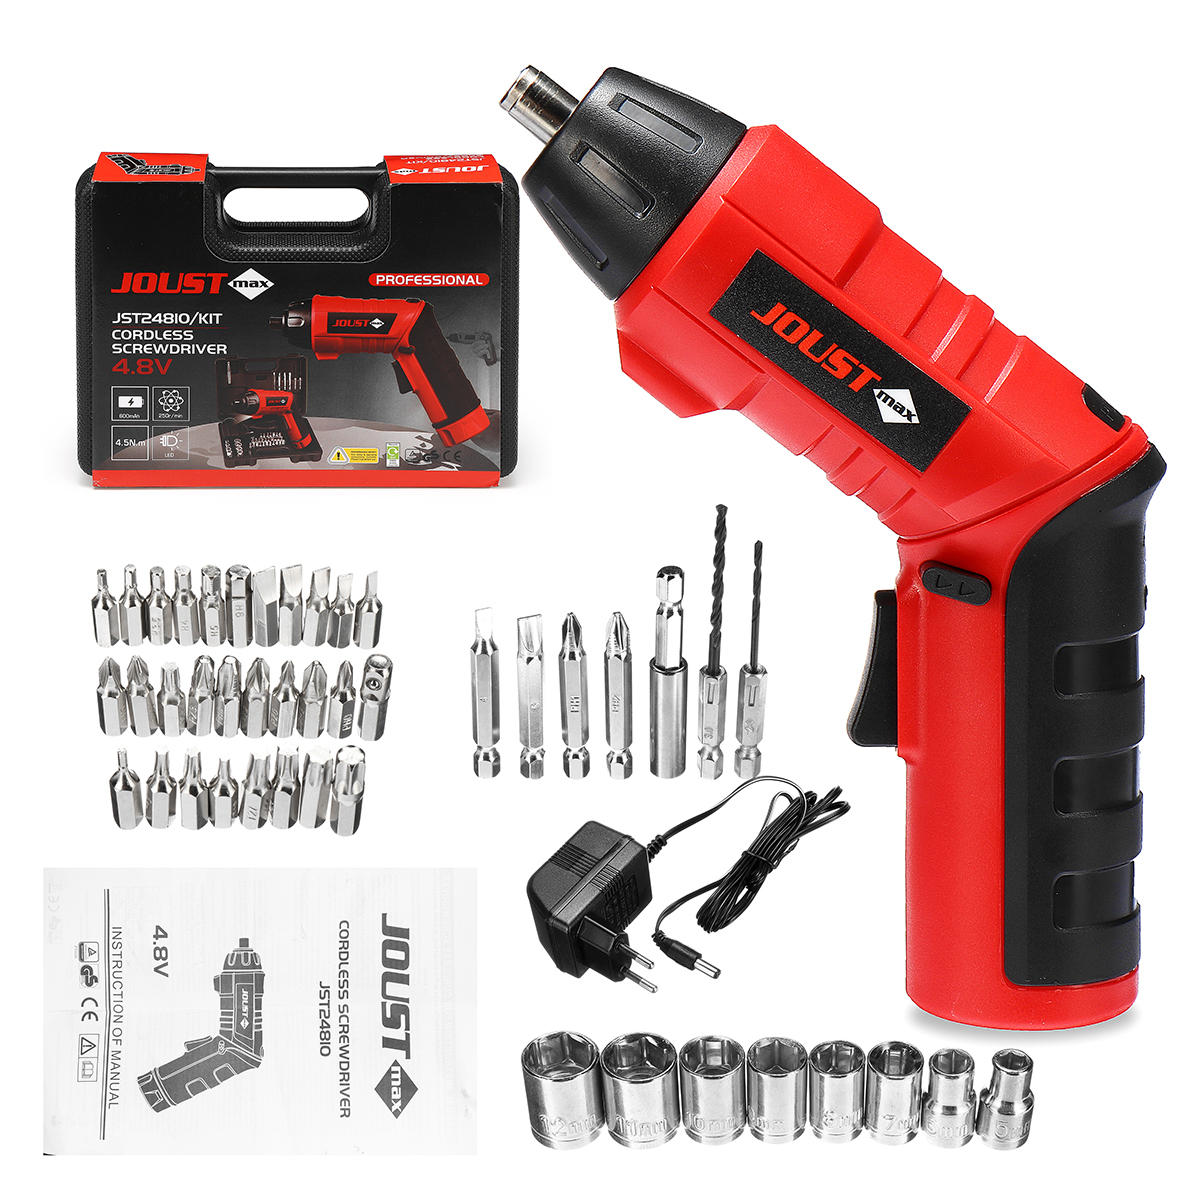 Tonfon 3.6V Cordless Electric Screwdriver USB Rechargable Power Screw Driver with Screw Bits - 1